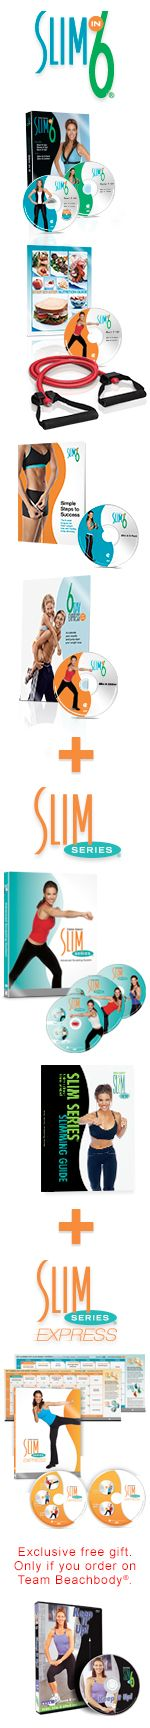 Slim in 6 Deluxe with trainer Debbie Siebers from Beach Body products (same people as the P90X programs, but lower intensity!)